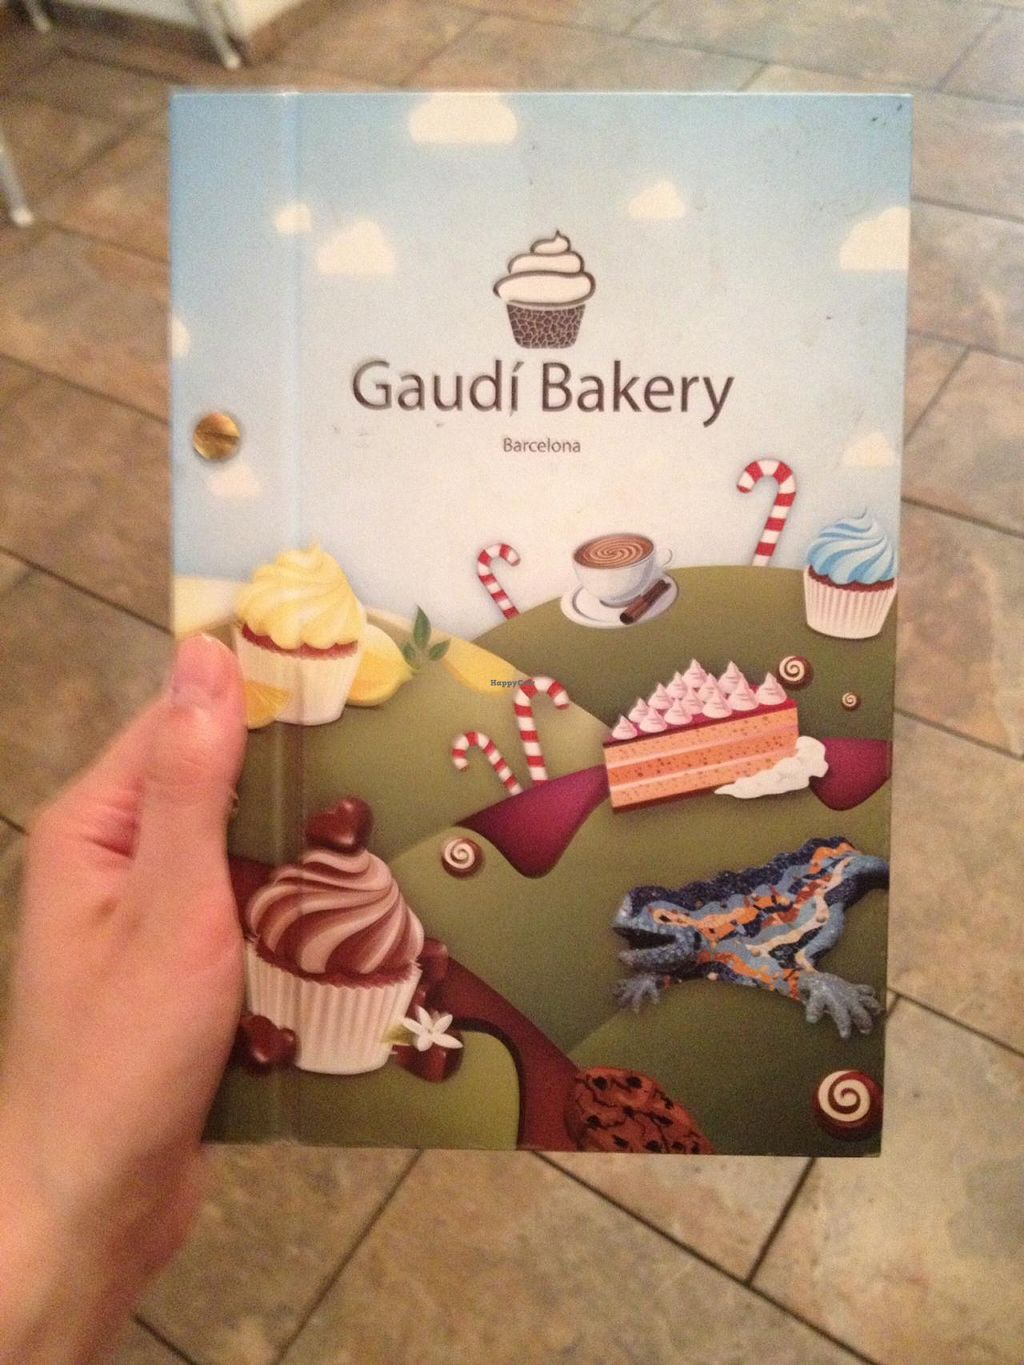 "Photo of Gaudi Bakery  by <a href=""/members/profile/kelwood13"">kelwood13</a> <br/>Menu cover <br/> June 22, 2015  - <a href='/contact/abuse/image/59683/106881'>Report</a>"